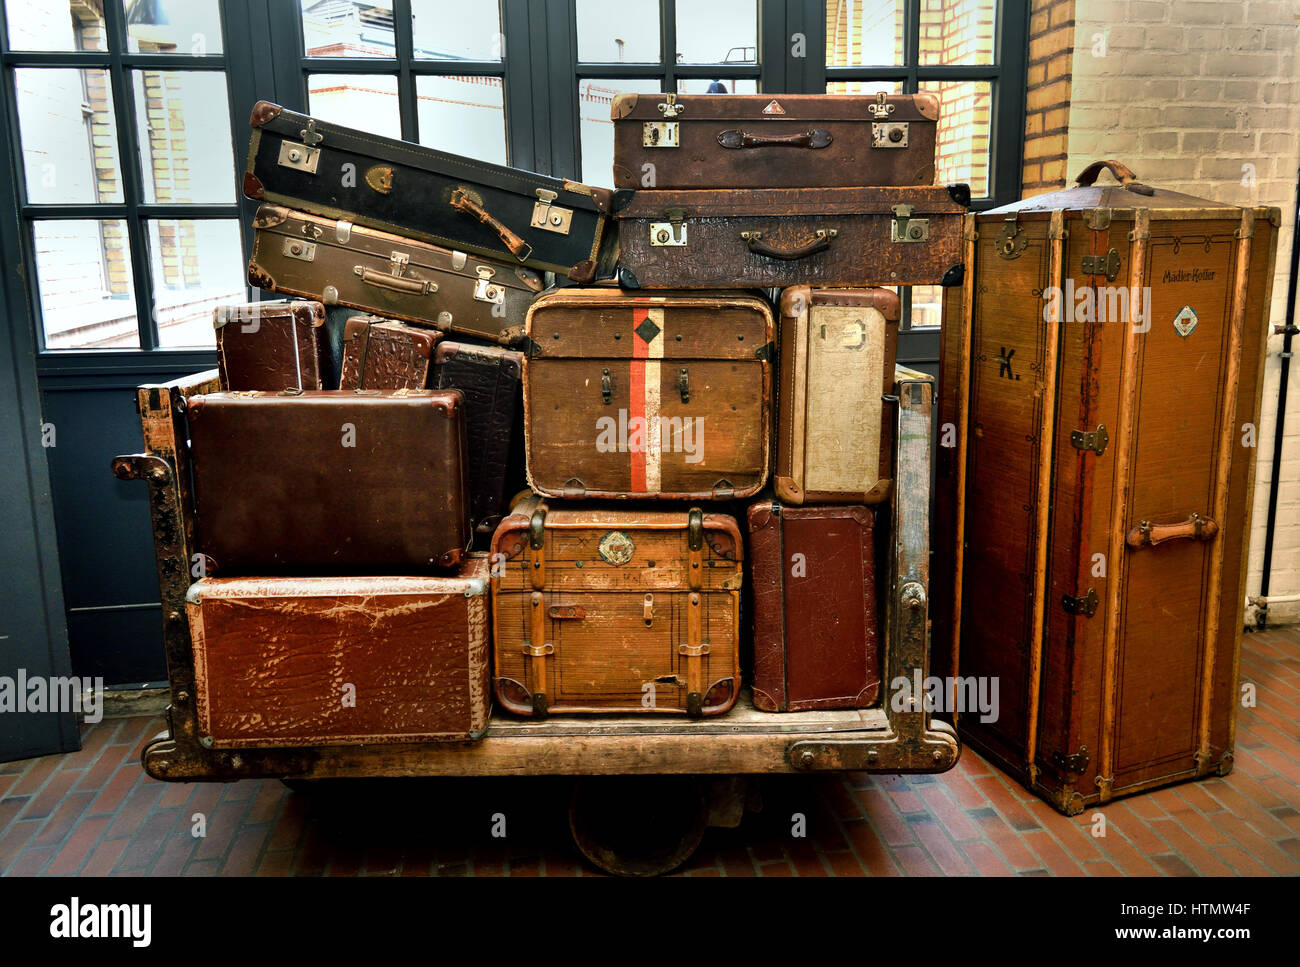 Museum of Technology (The Deutsches Technikmuseum, scientific and technical collection. ) Germany  Berlin Kreuzberg - Stock Image